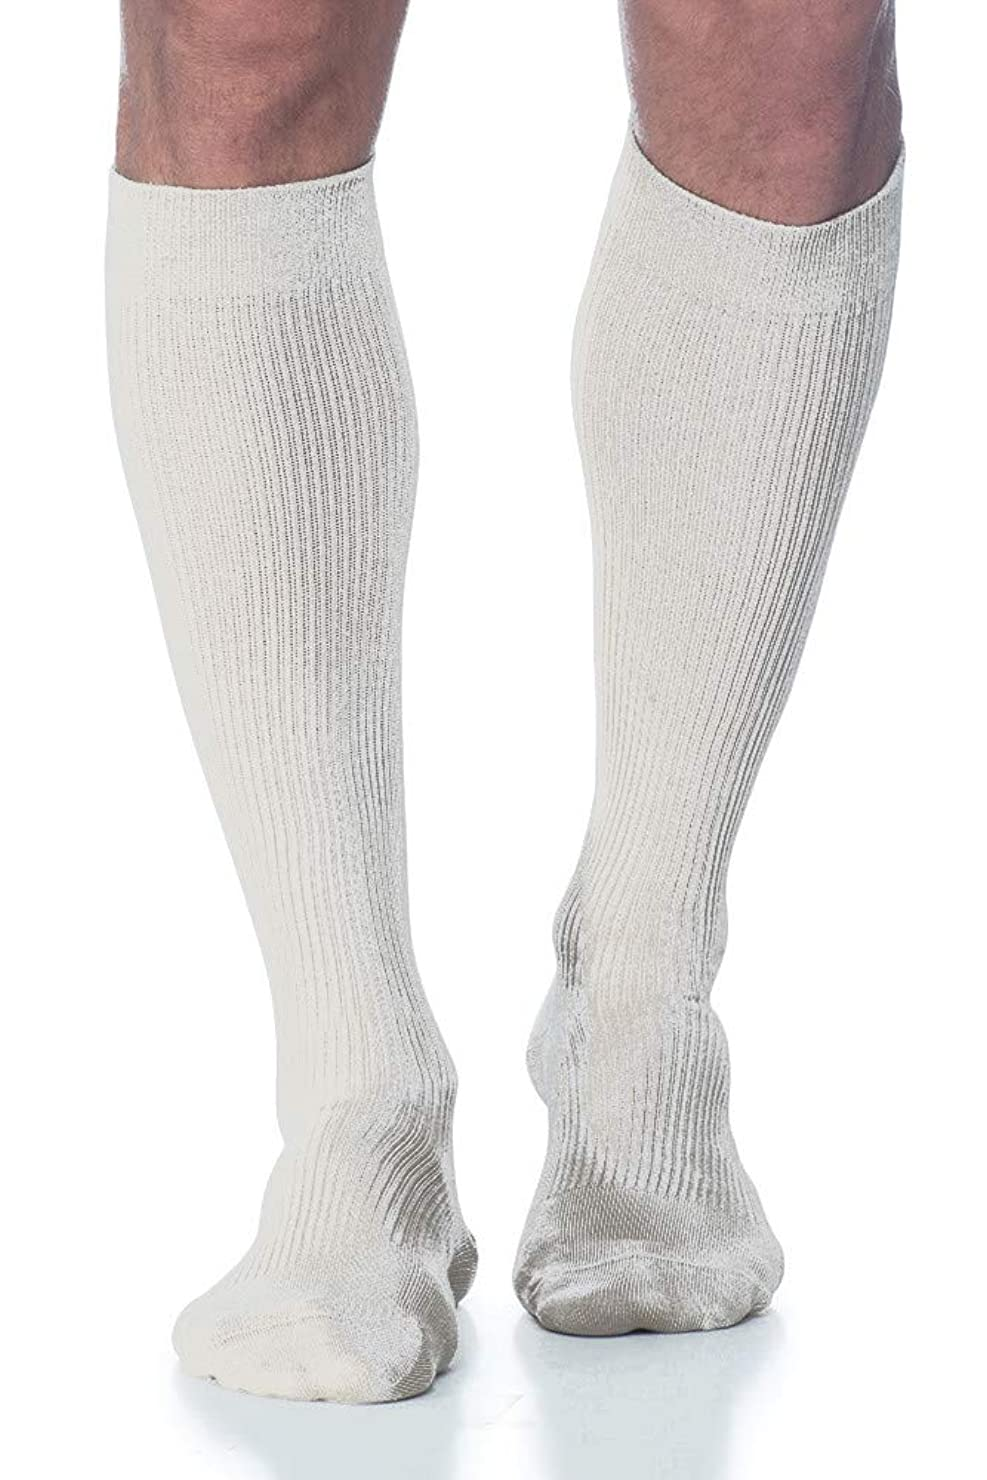 入場料松器官Sigvaris 186CC00 Casual Cotton 15-20mmHg Closed Toe Men's Knee High Sock Size: C (11.5-14), Color: White 00 by Sigvaris